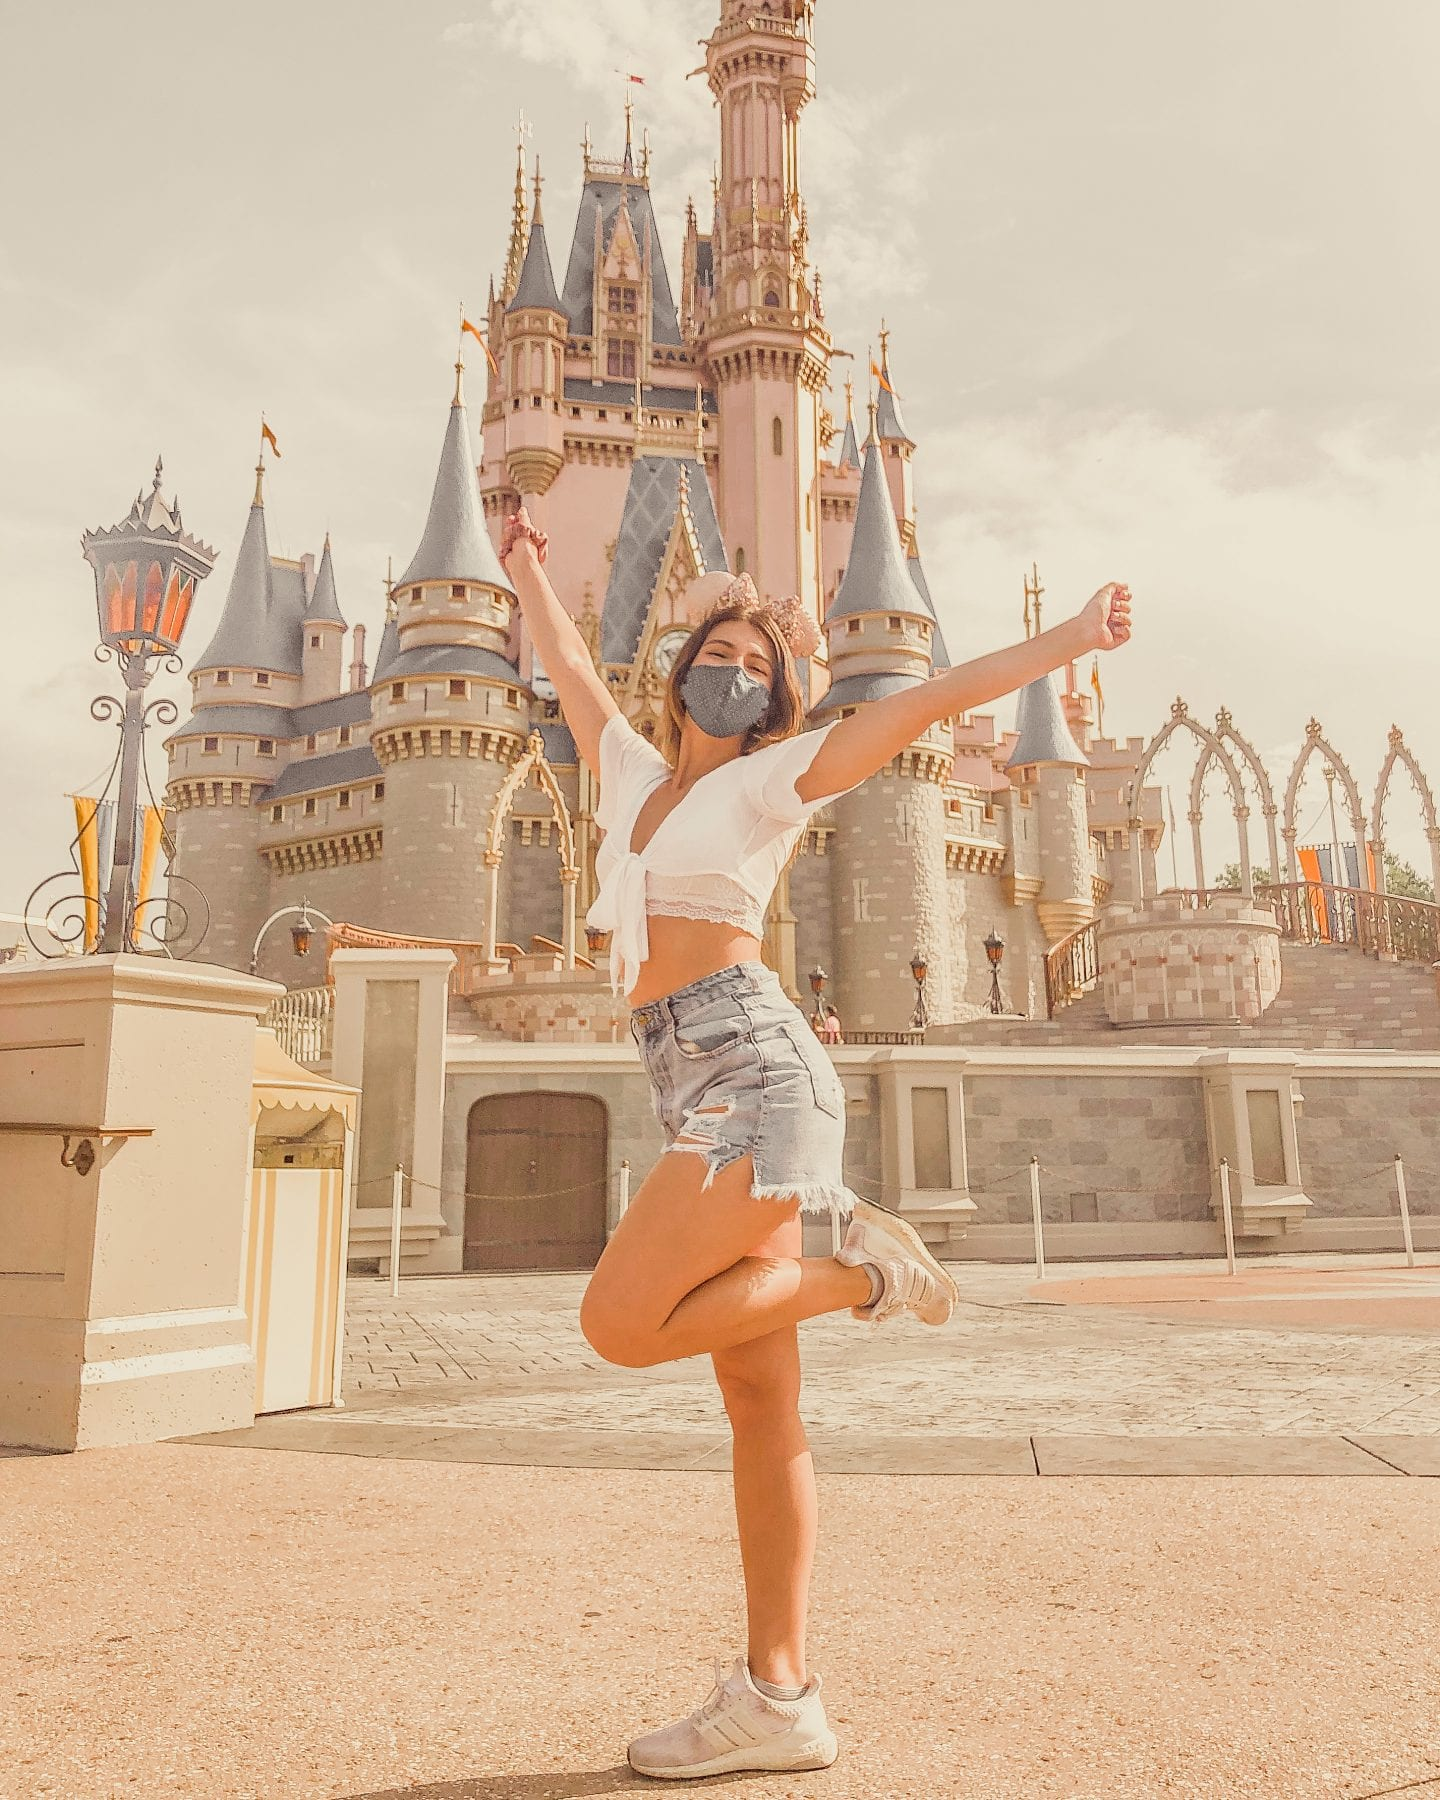 Walt Disney World Parks Reopening: What To Expect and How To Prepare for Your Visit